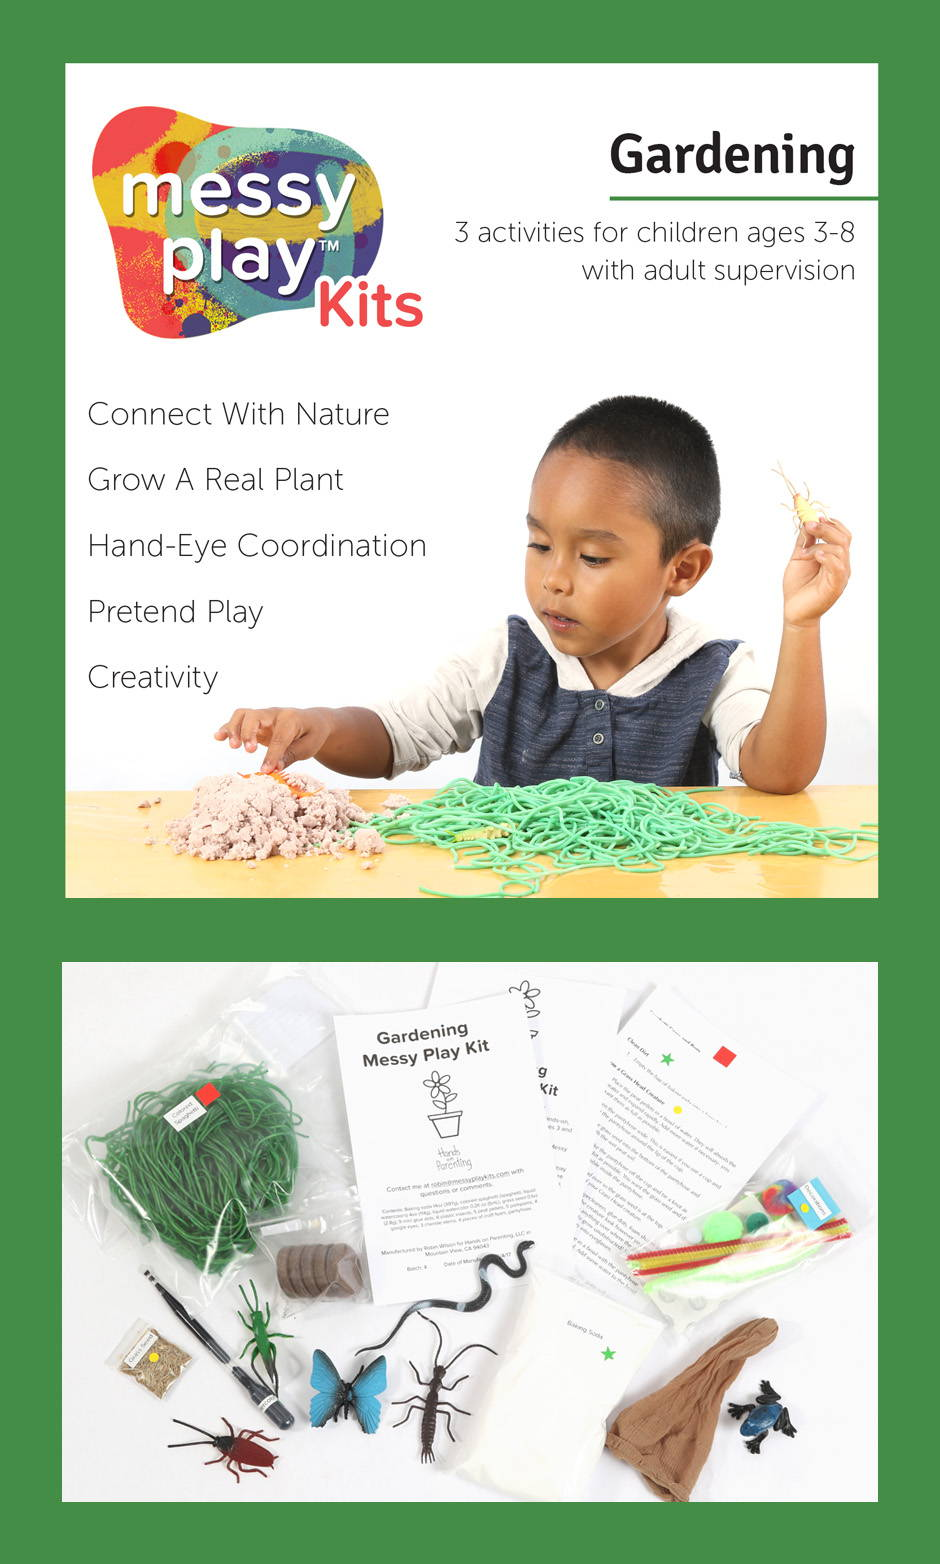 Gardening Messy Play Kit contains 3 activities that teach connection with nature, growing real plants, hand-eye coordination, pretend play, and creativity.